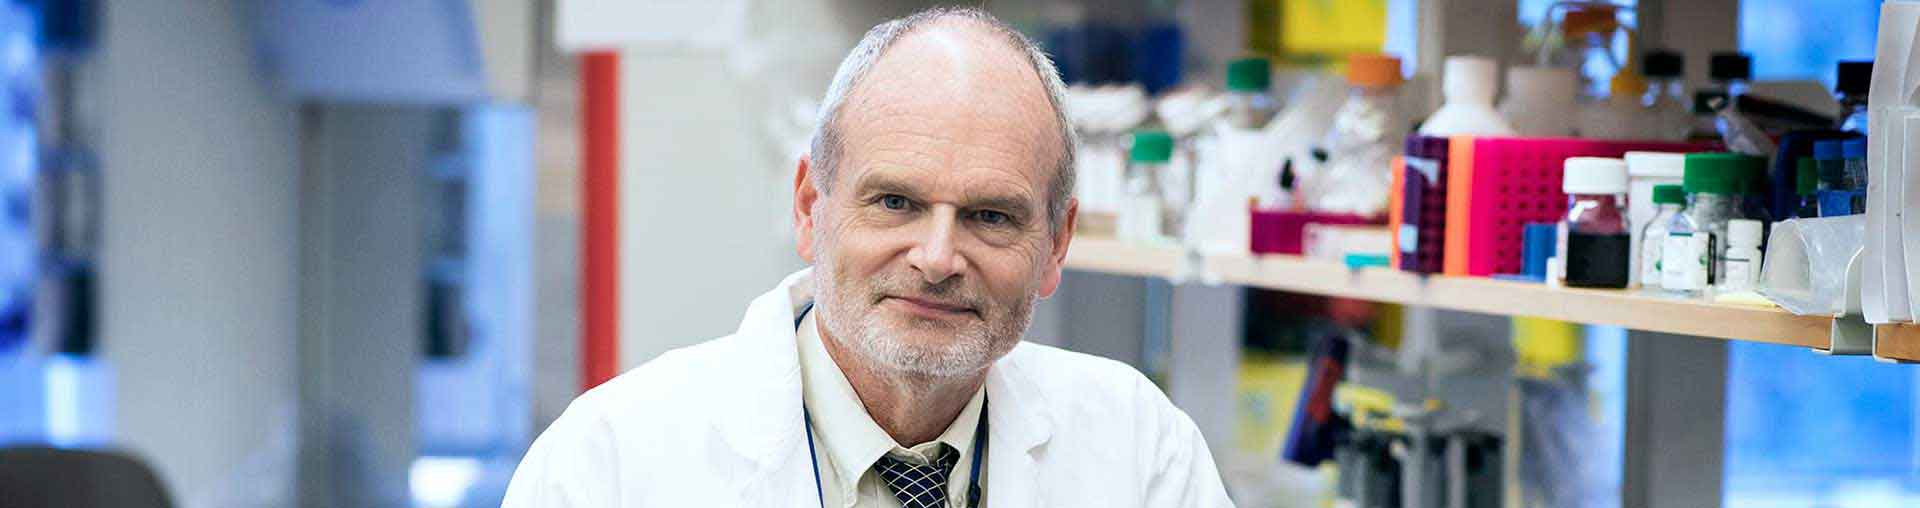 William Petri, MD, working on COVID-19 testing and vaccines in his lab